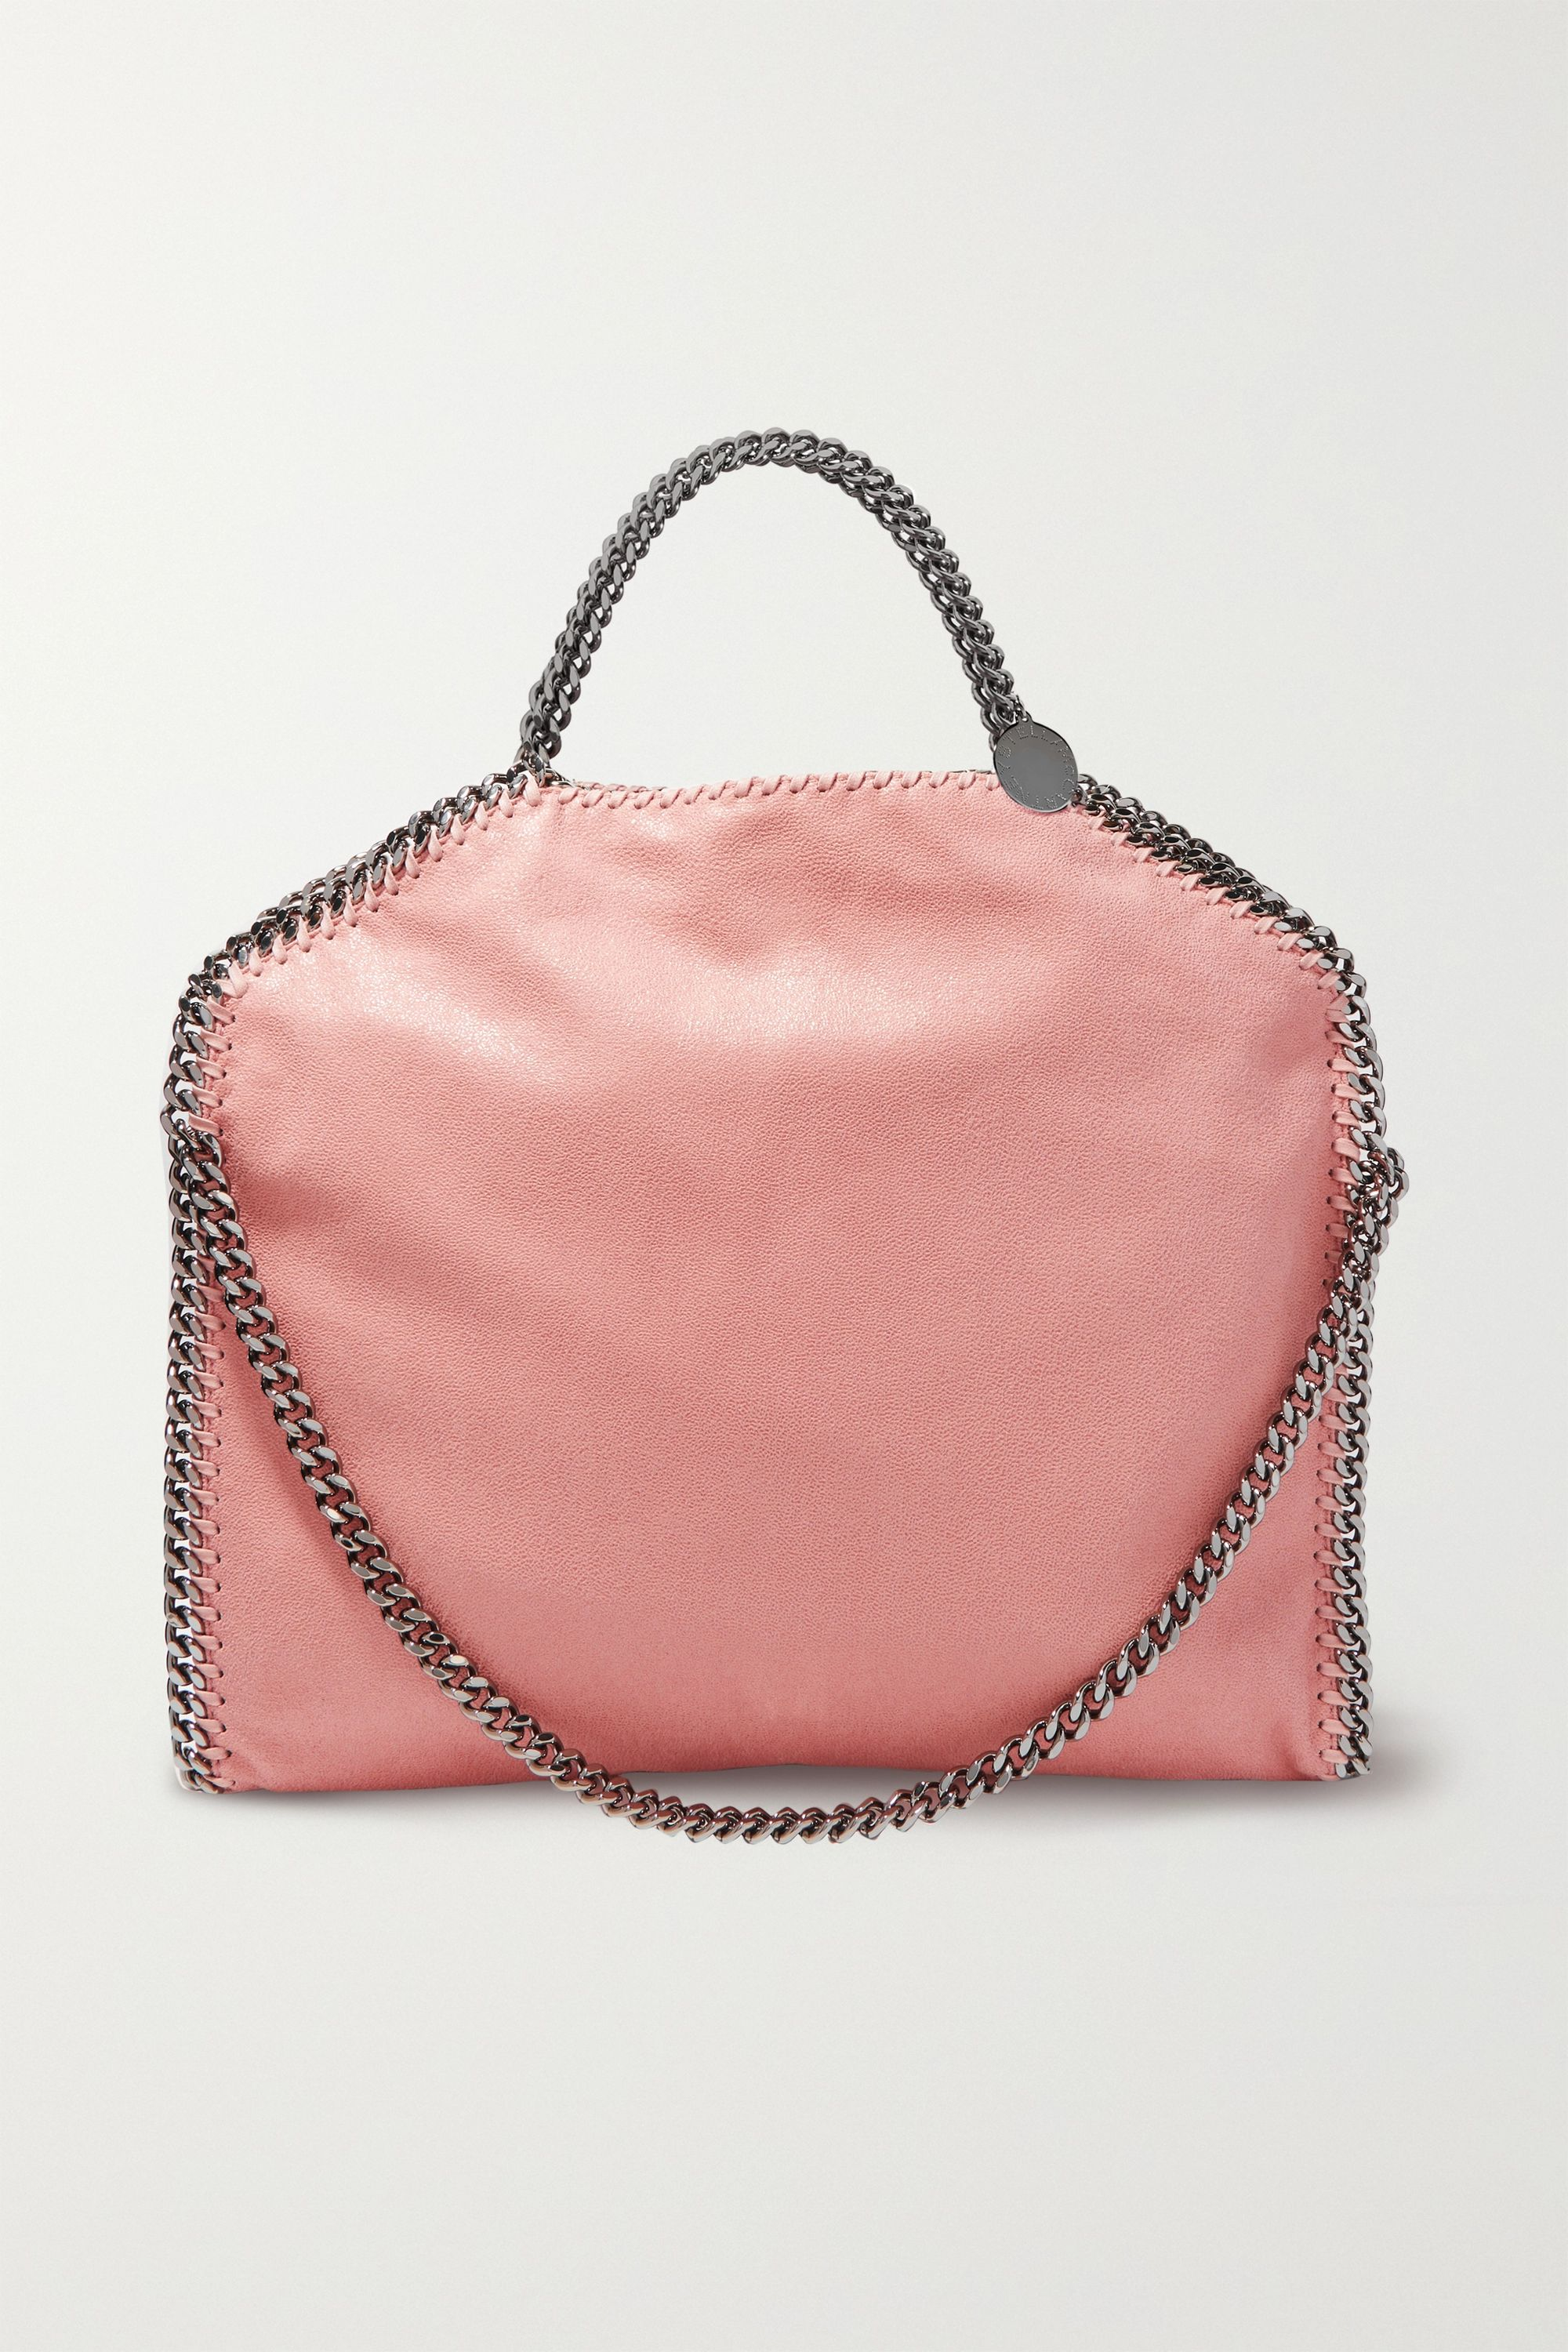 Stella McCartney The Falabella small faux brushed-leather shoulder bag